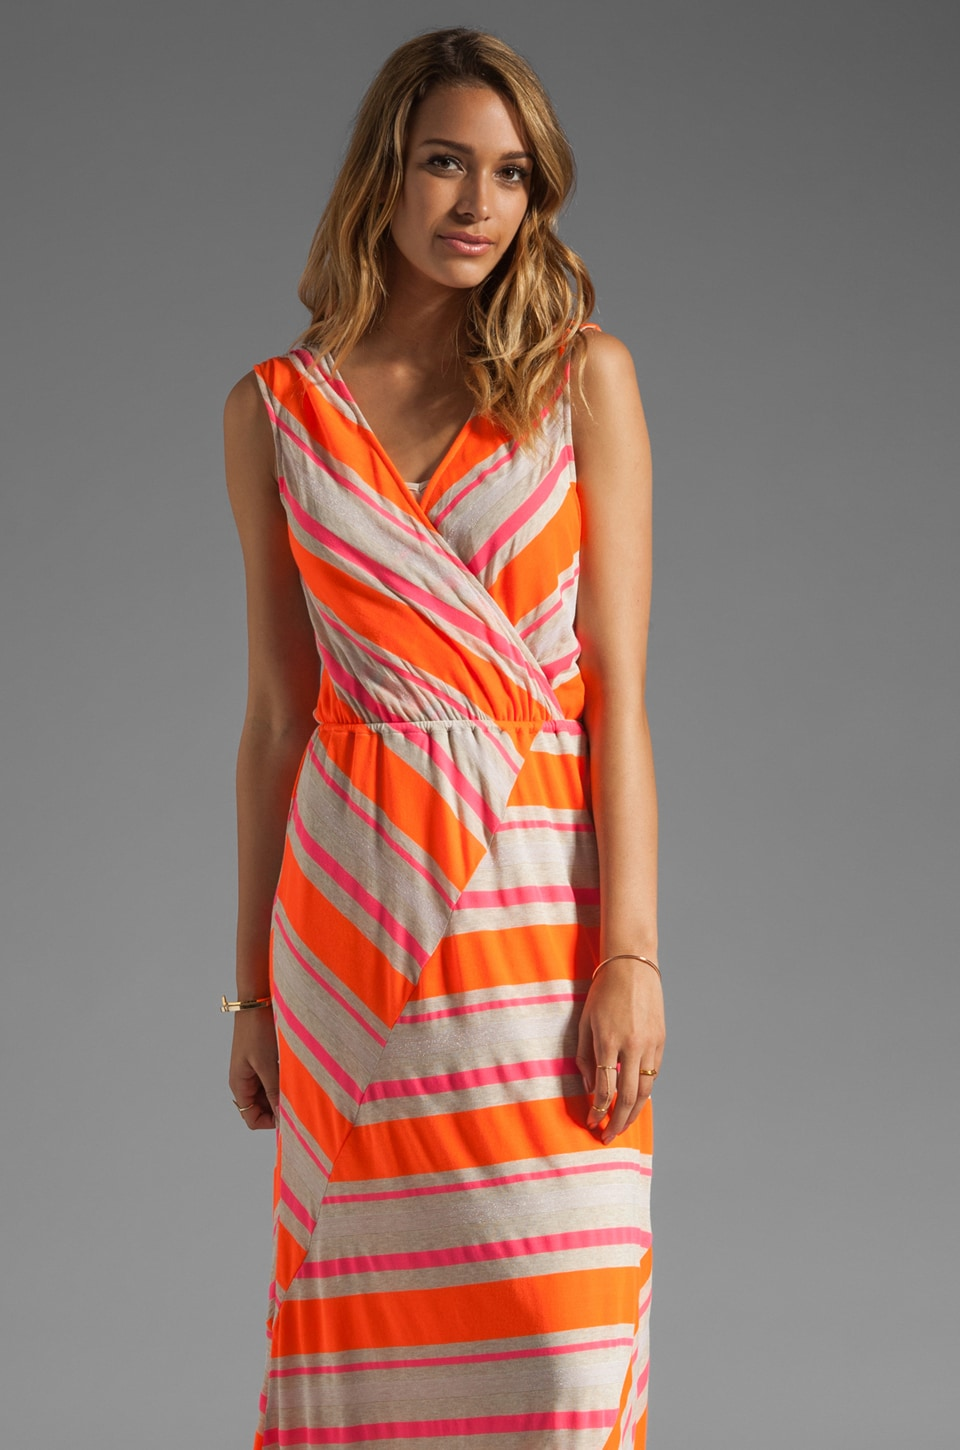 Ella Moss Zadie Stripe Dress in Fire